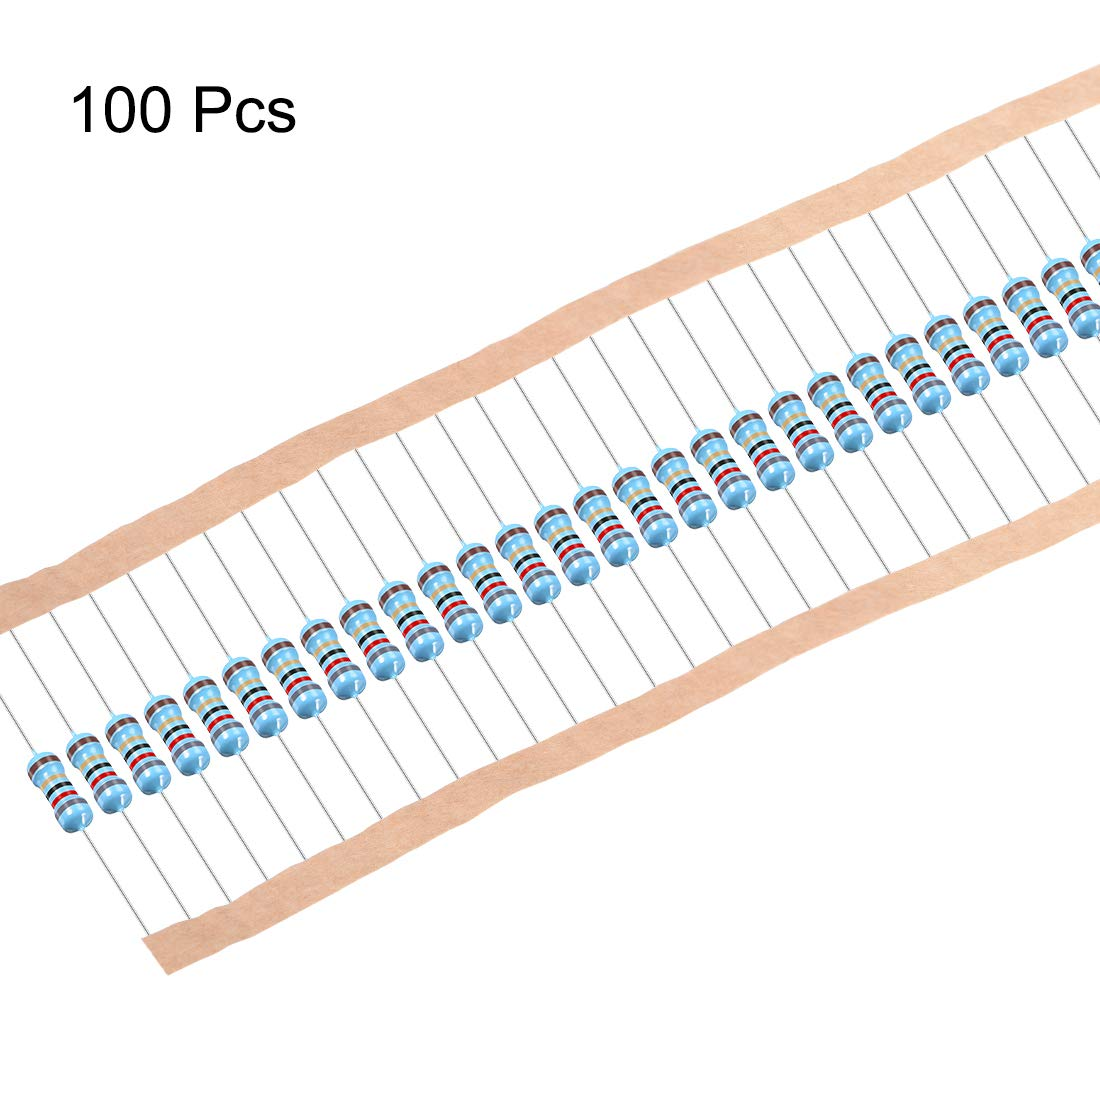 uxcell 100Pcs 75 Ohm Resistor Axial Lead 5 Bands for DIY Electronic Projects and Experiments 1//2W 1/% Tolerance Metal Film Resistors